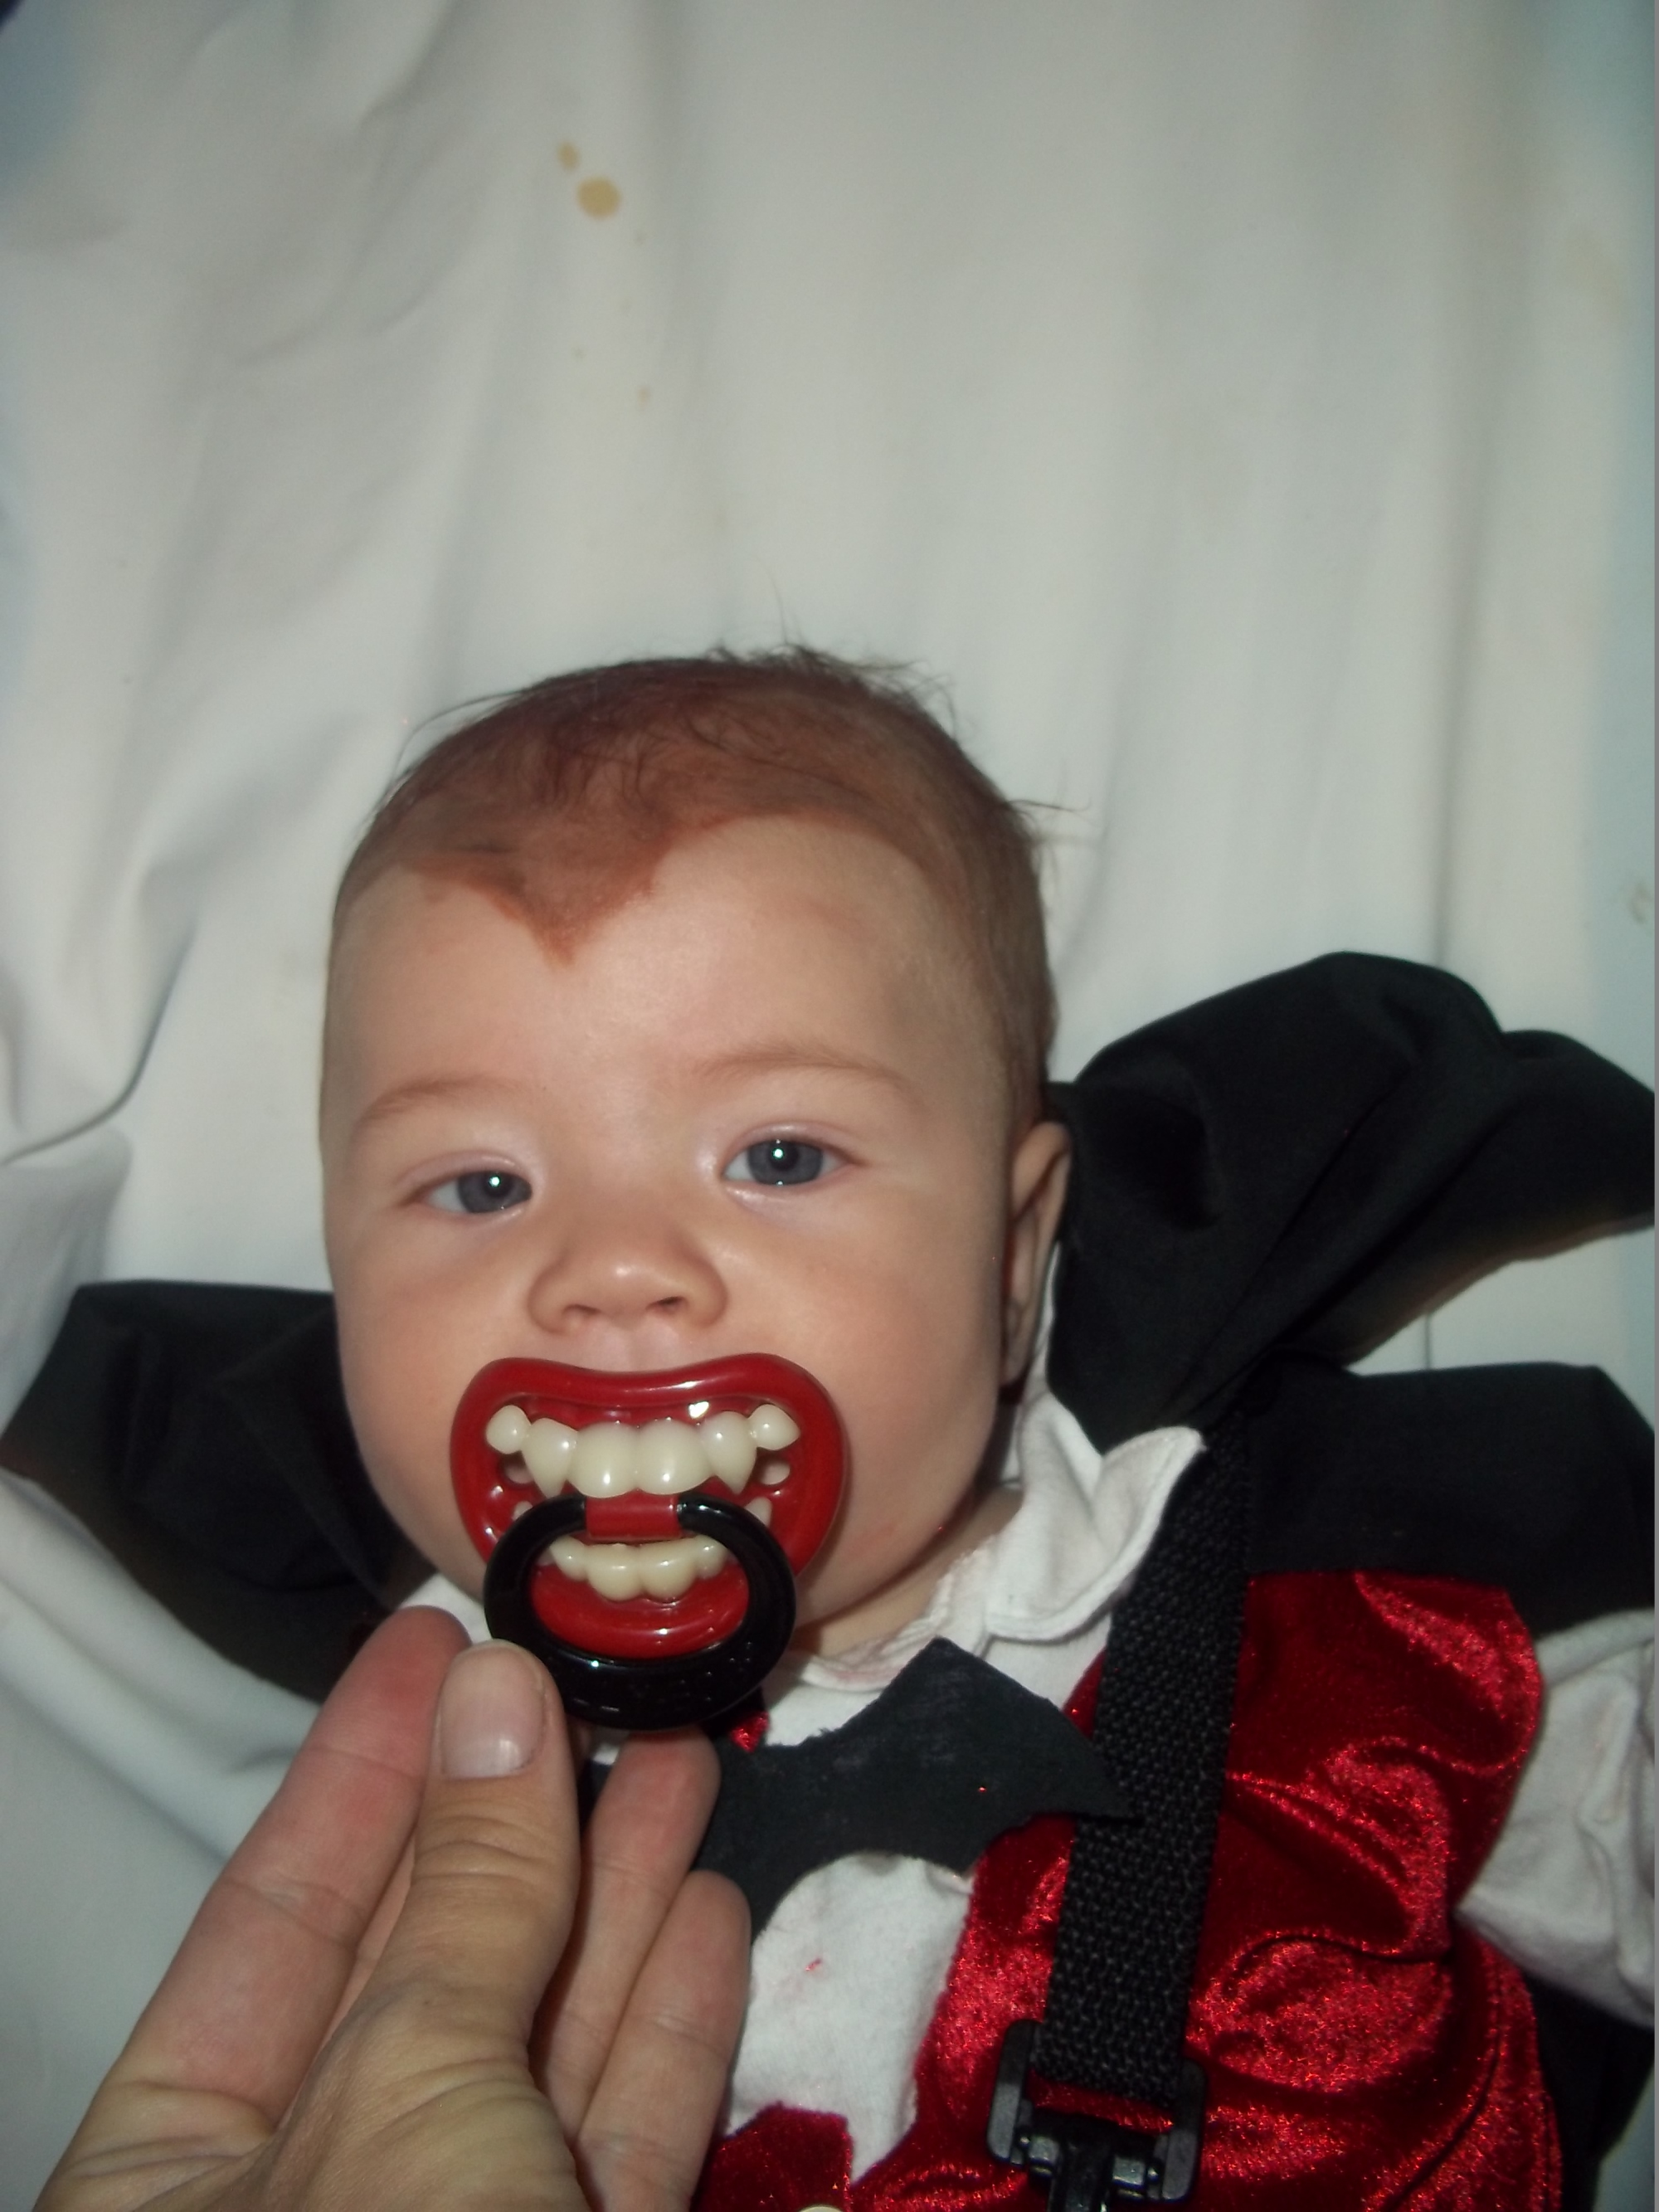 Dracula Daniel Nolte; 3 and 1/2 months old